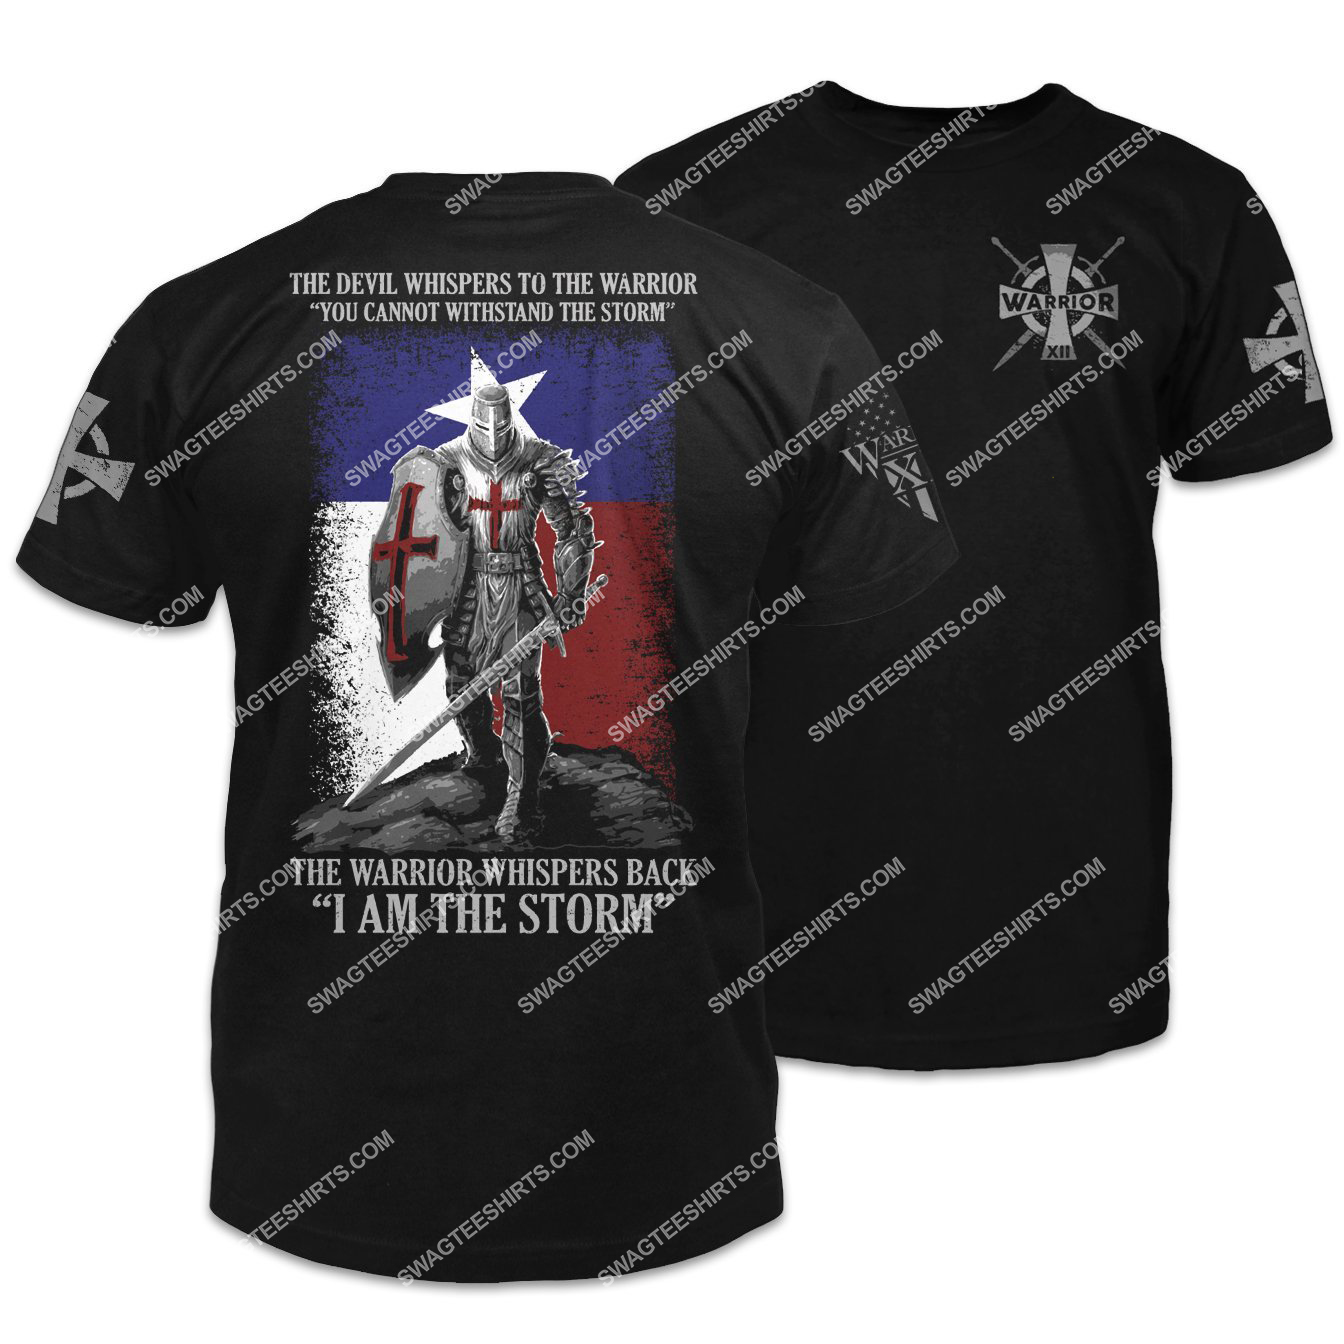 the devil whispers to the warrior you cannot withstand the storm knights templar shirt 1 - Copy (2)